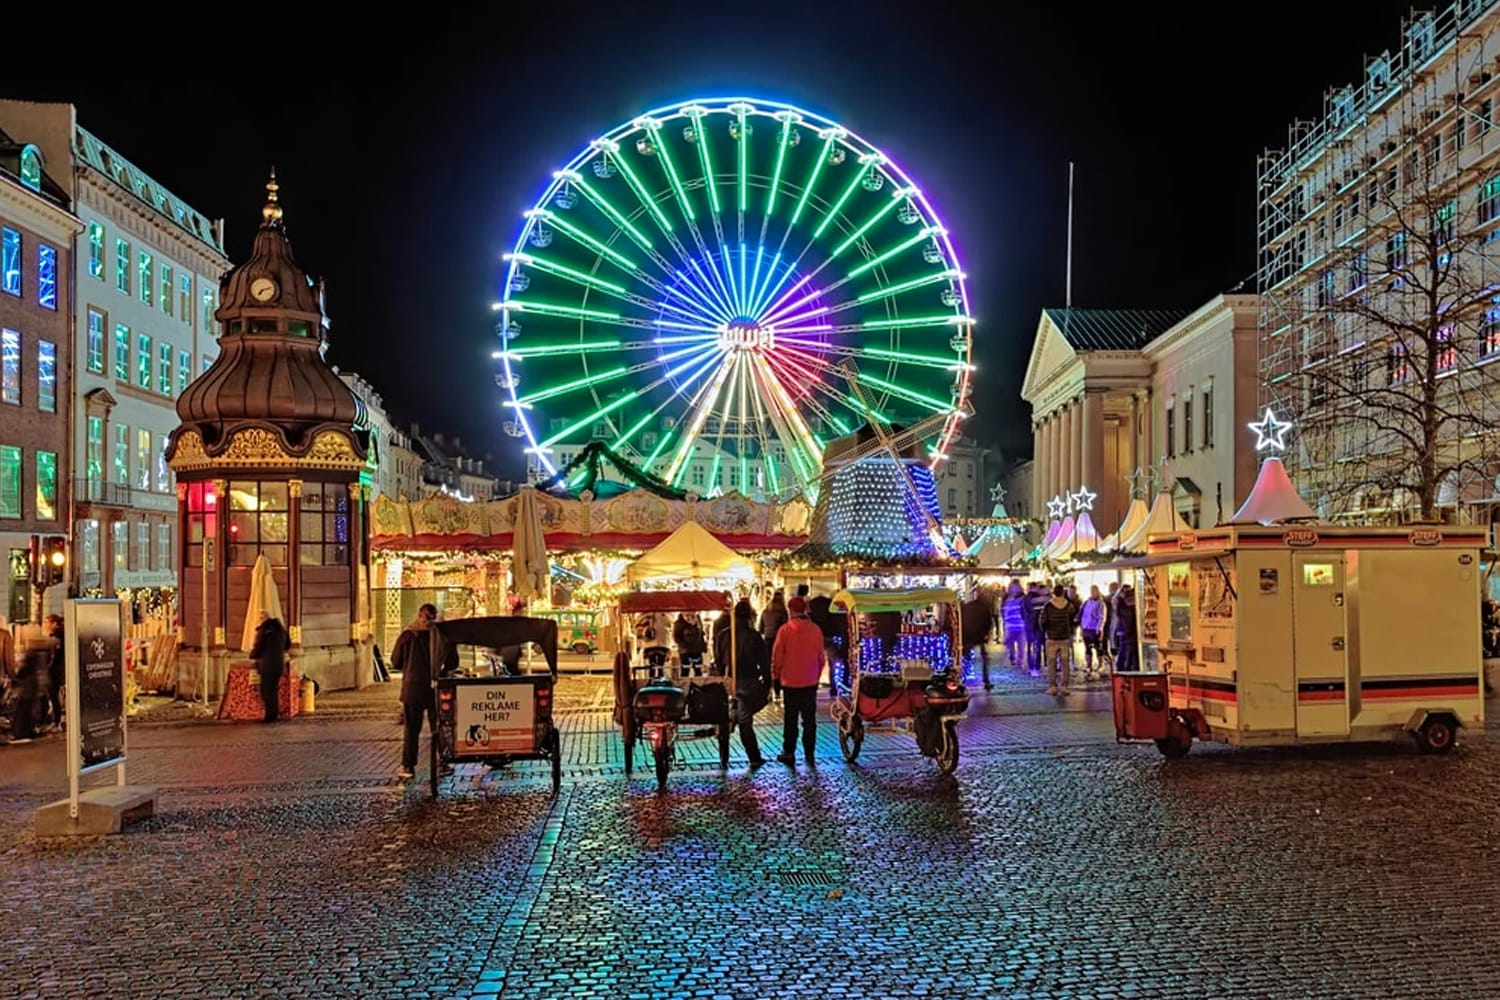 Christmas market with Ferris wheel on the Nytorv square in evening